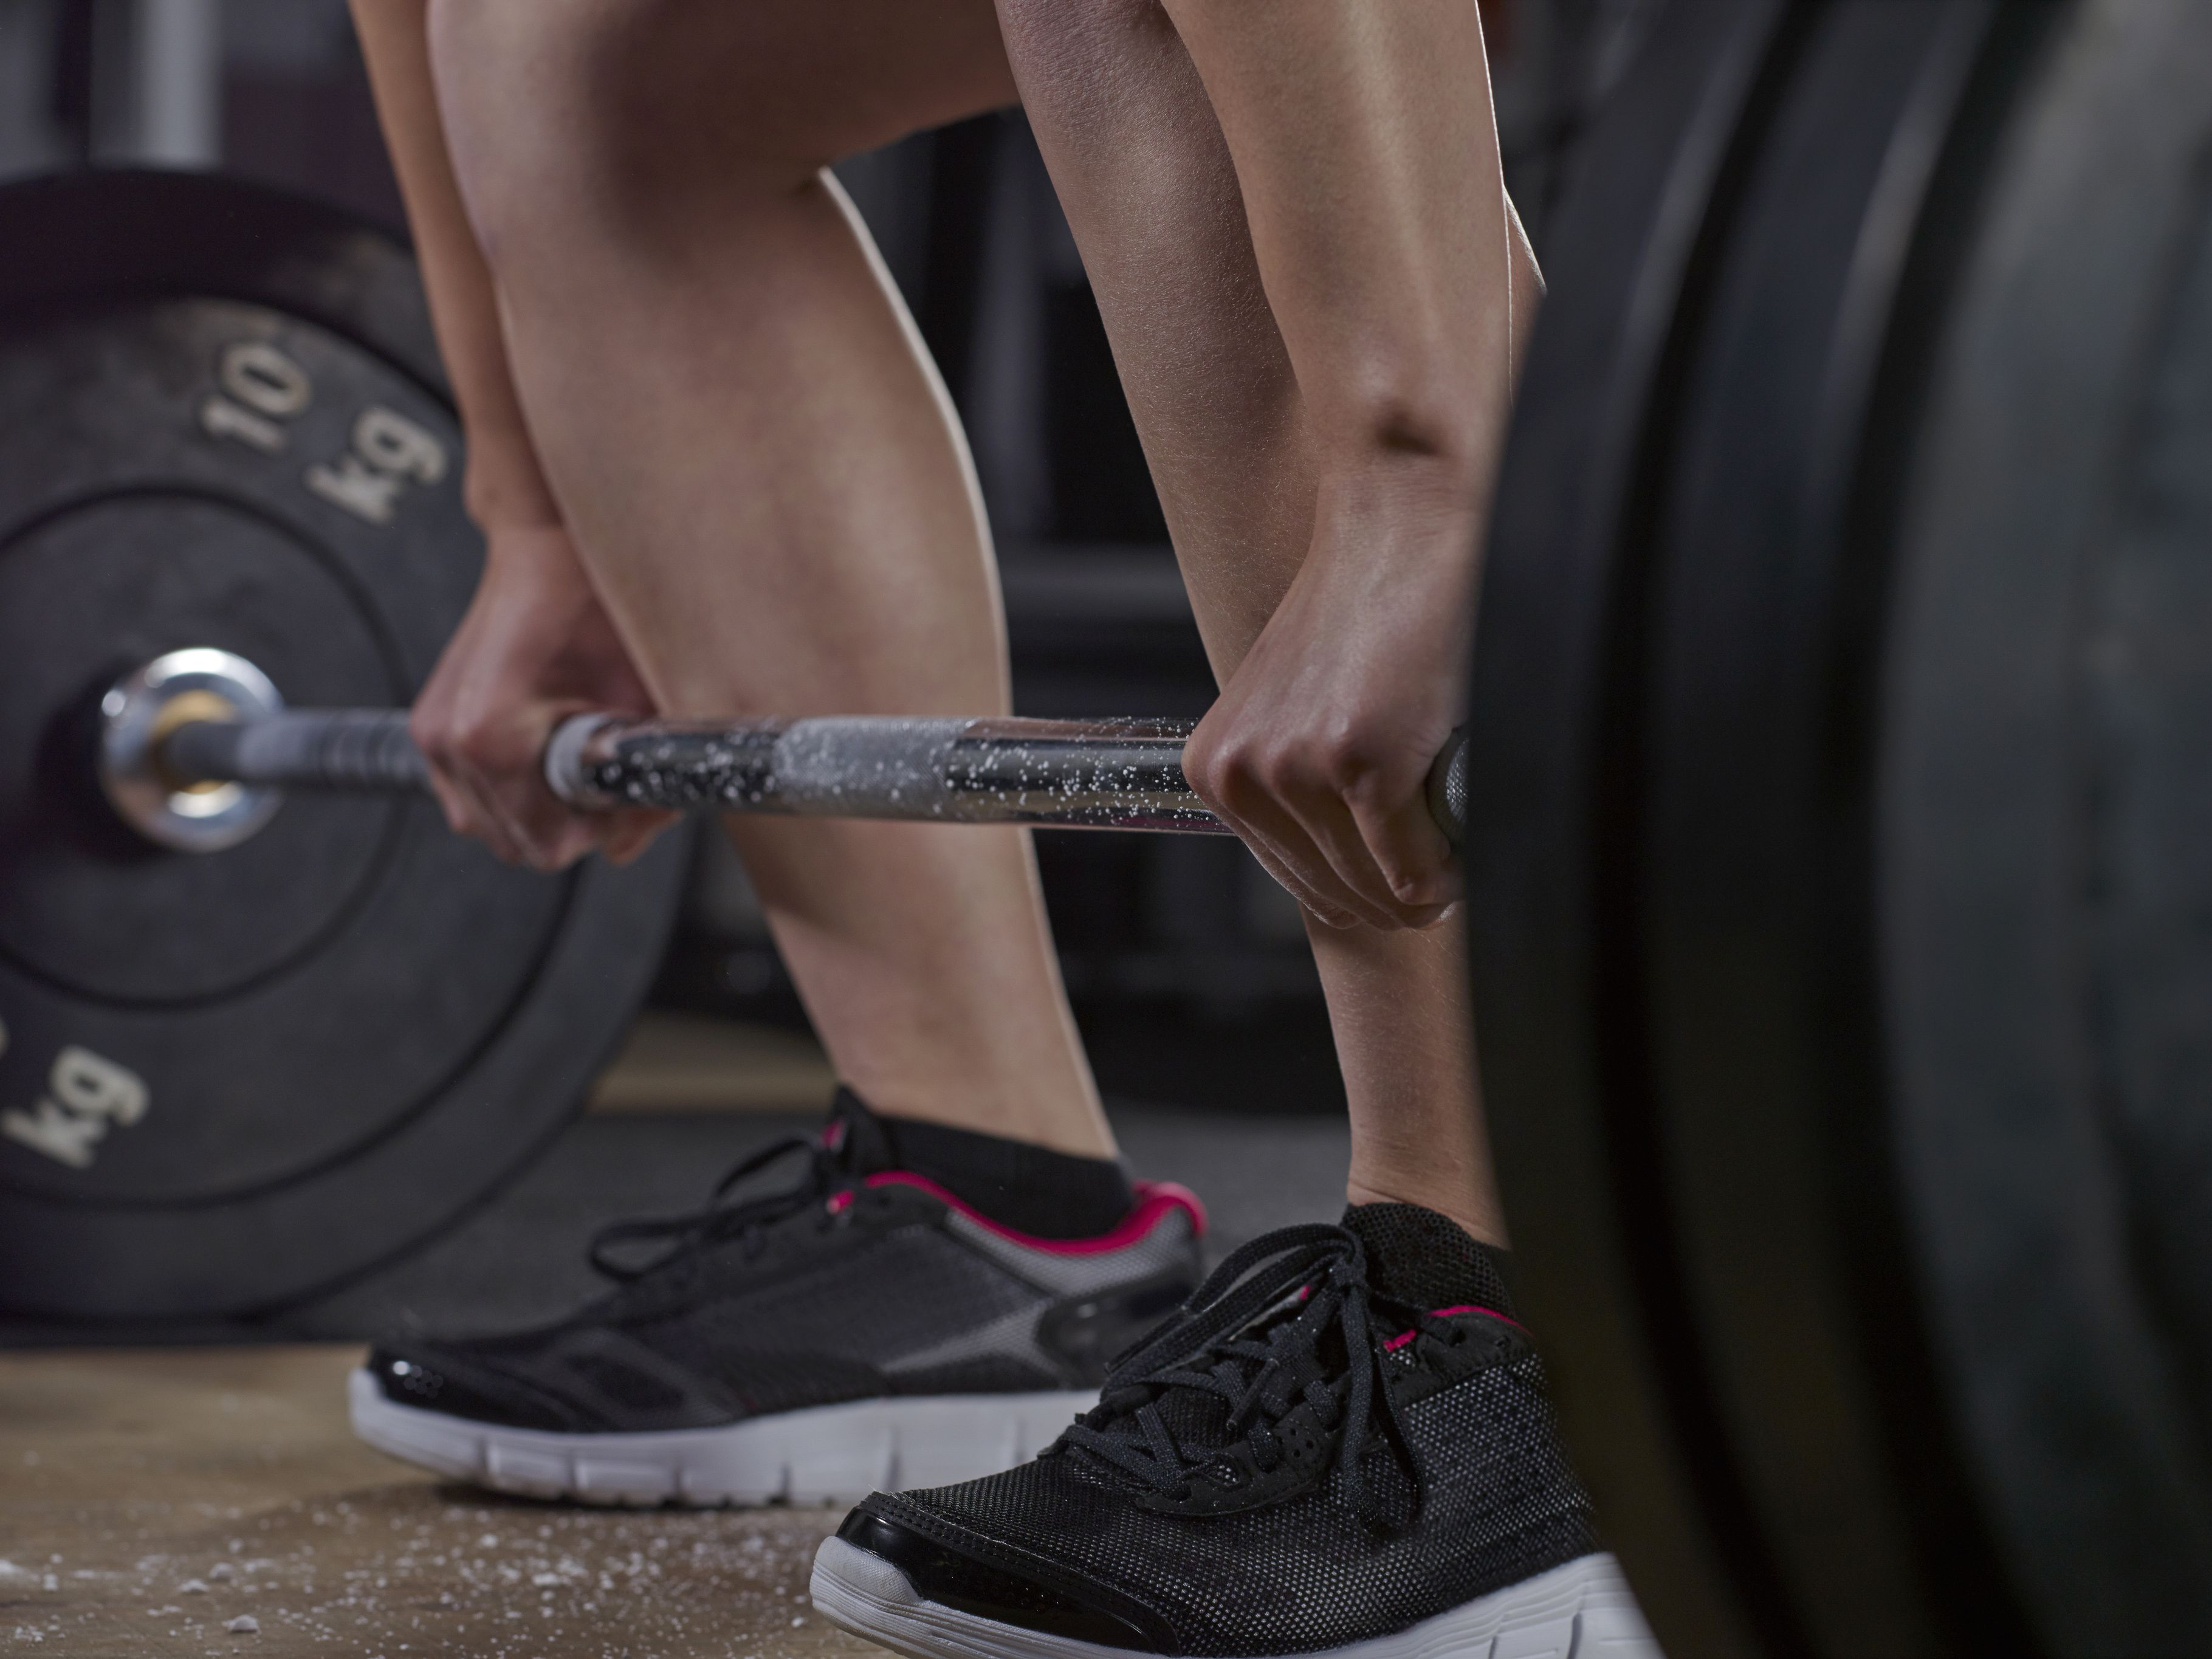 The 8 Best Weightlifting Shoes to Buy in 2018